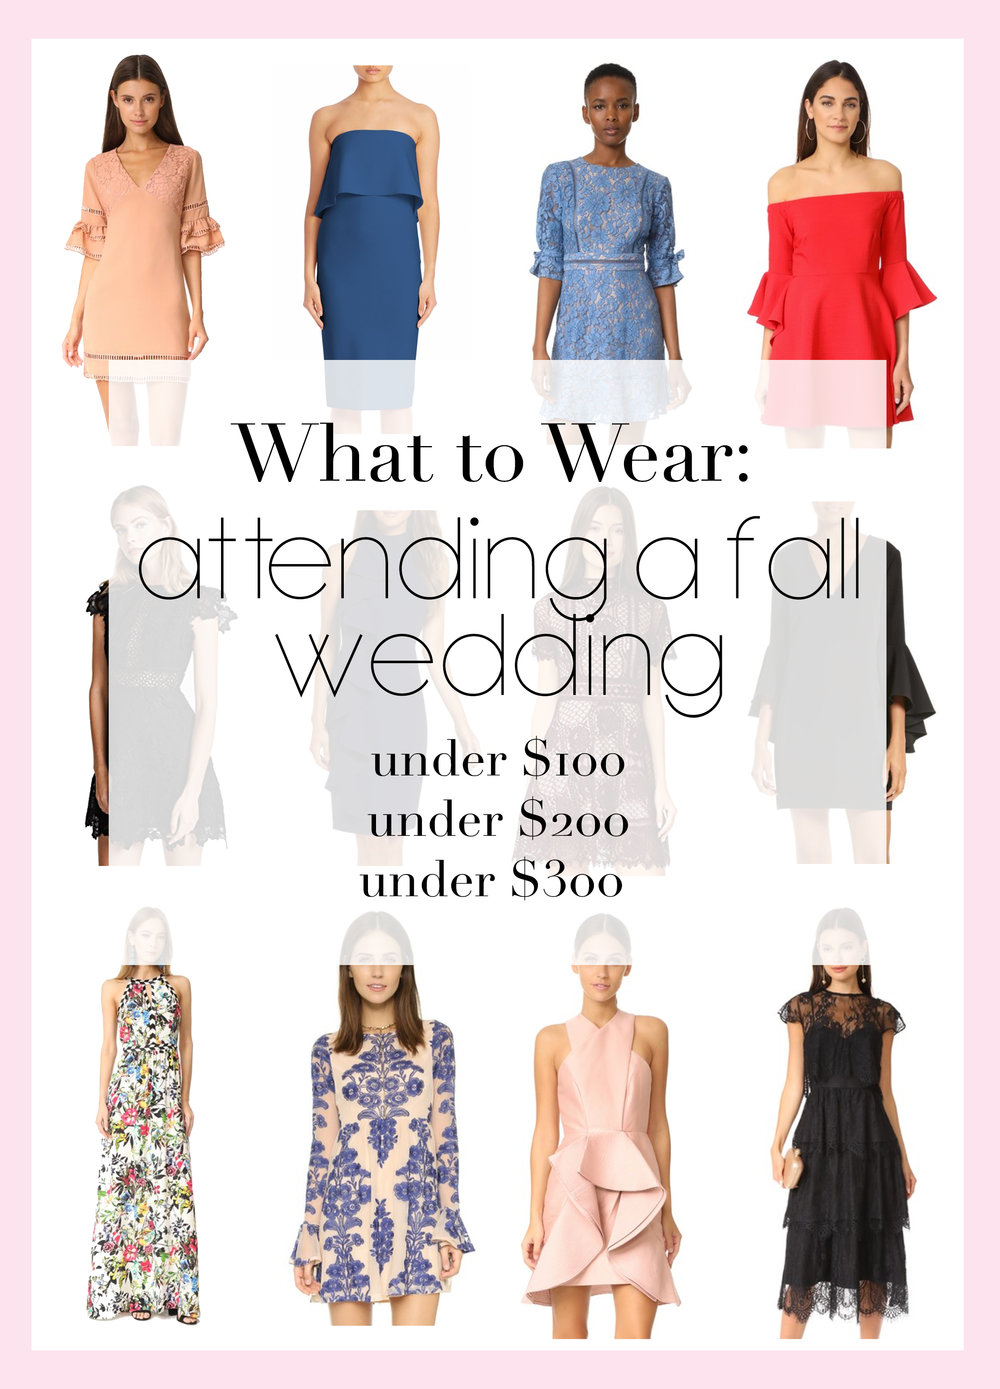 Wedding Attendee Dress Options